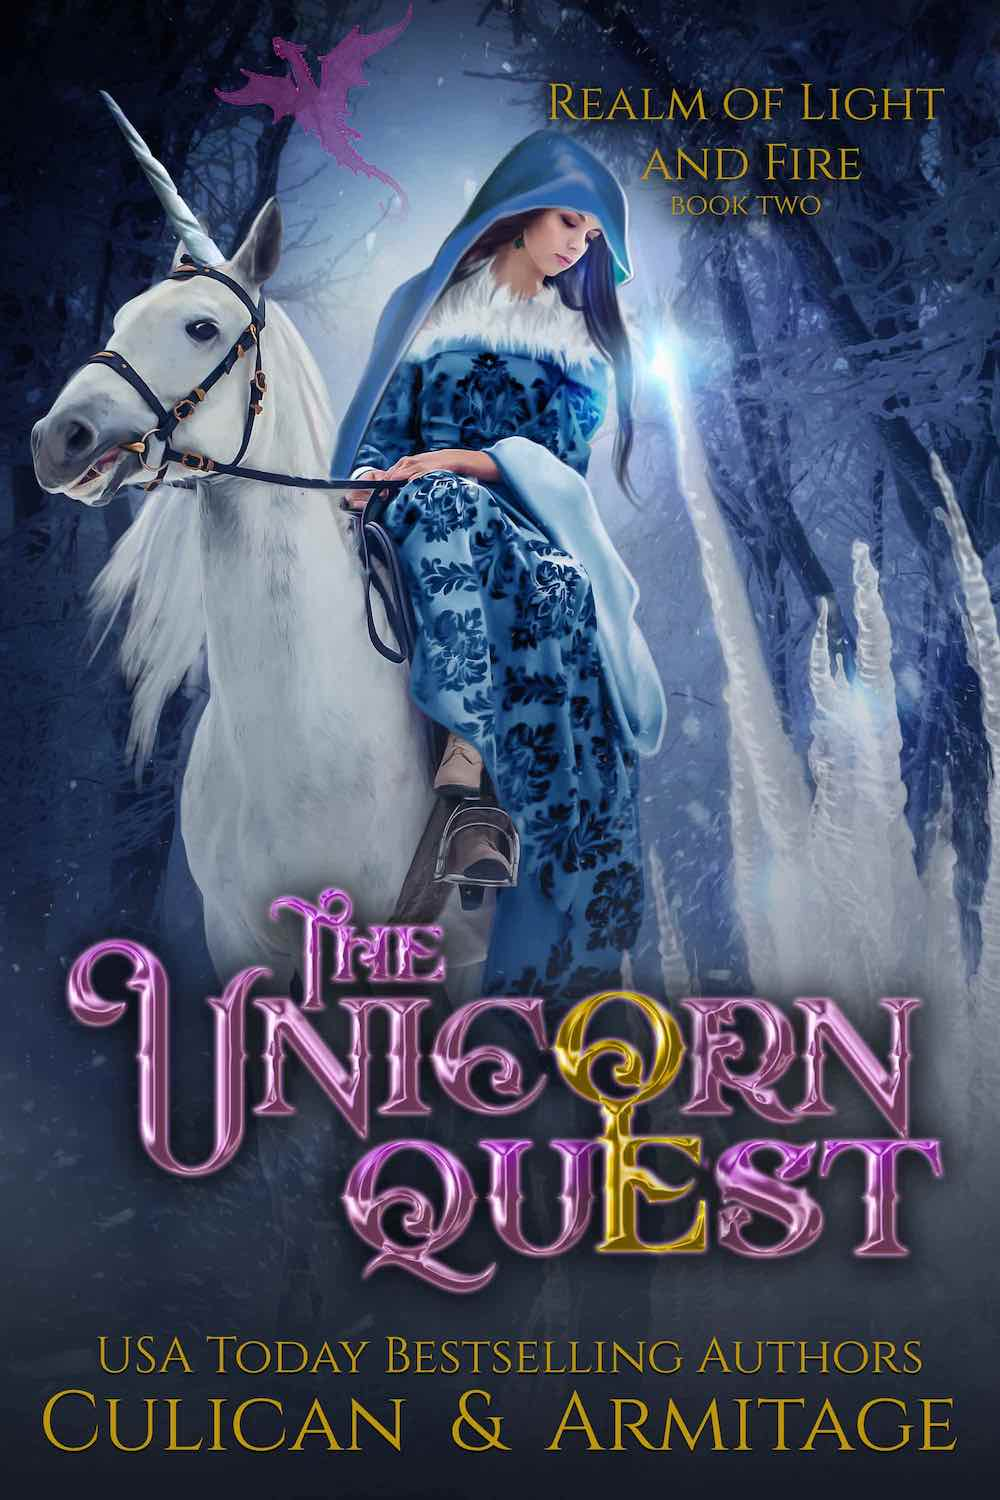 Realm of Light and Fire - The Unicorn Quest